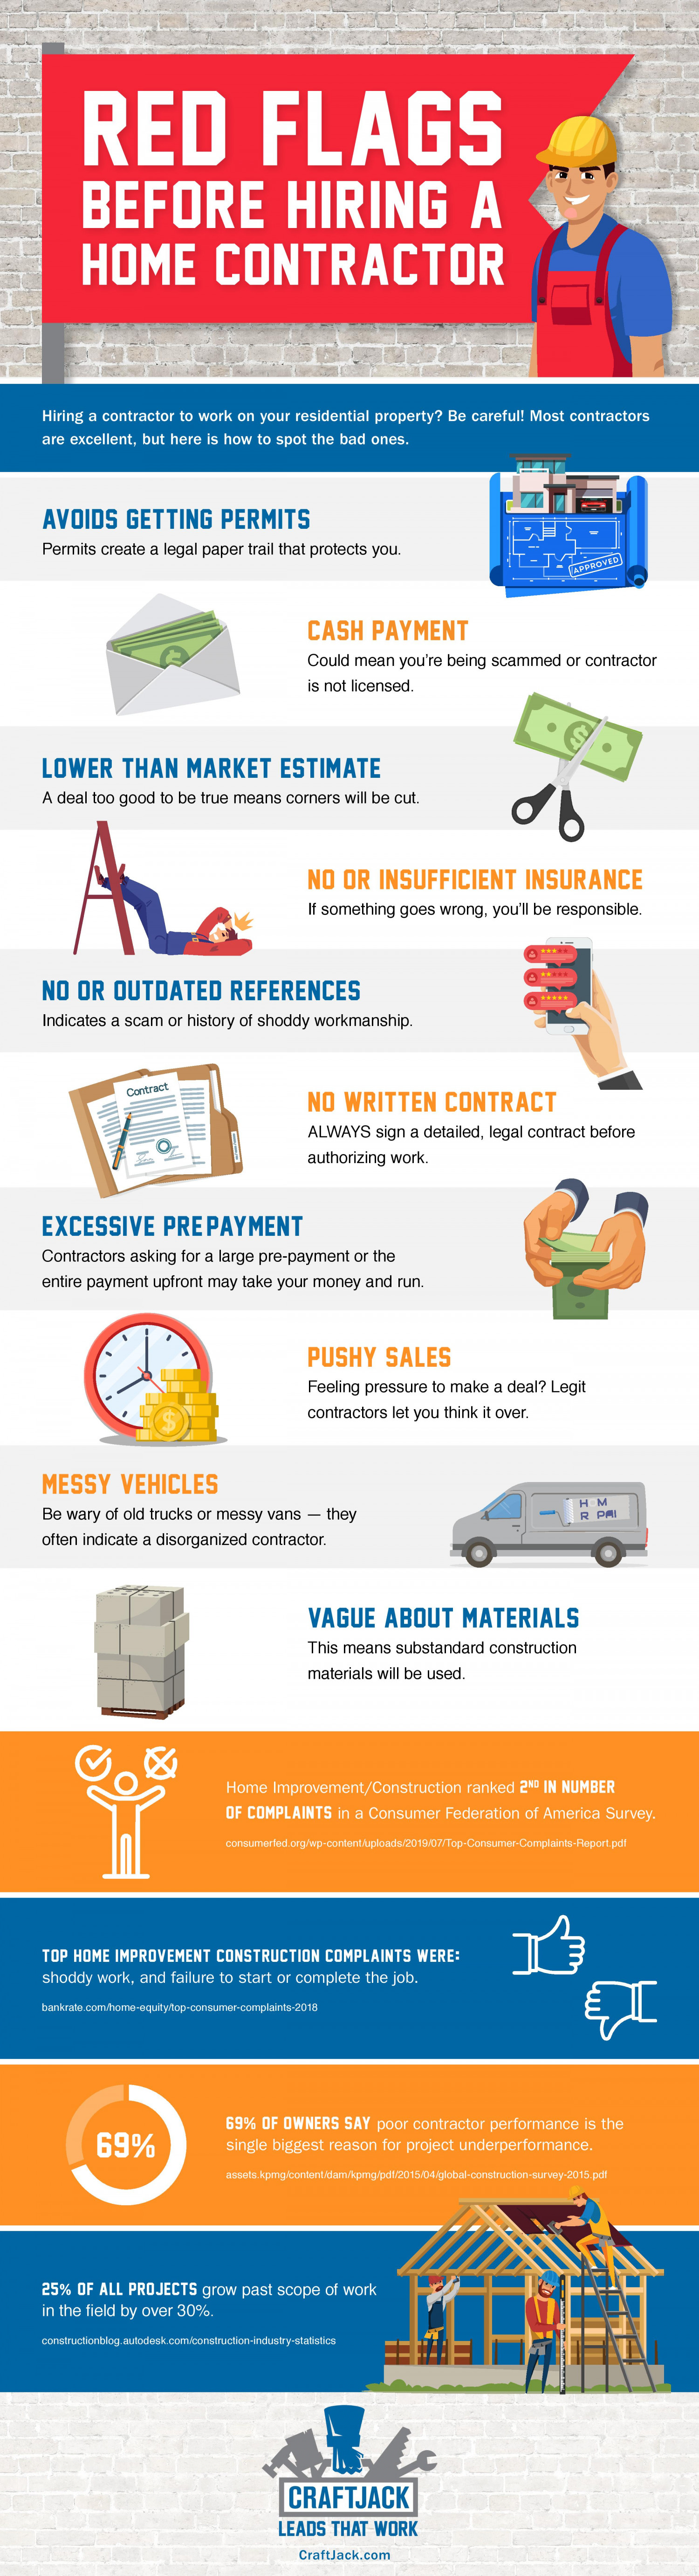 Red Flags Before Hiring a Home Contractor  Infographic